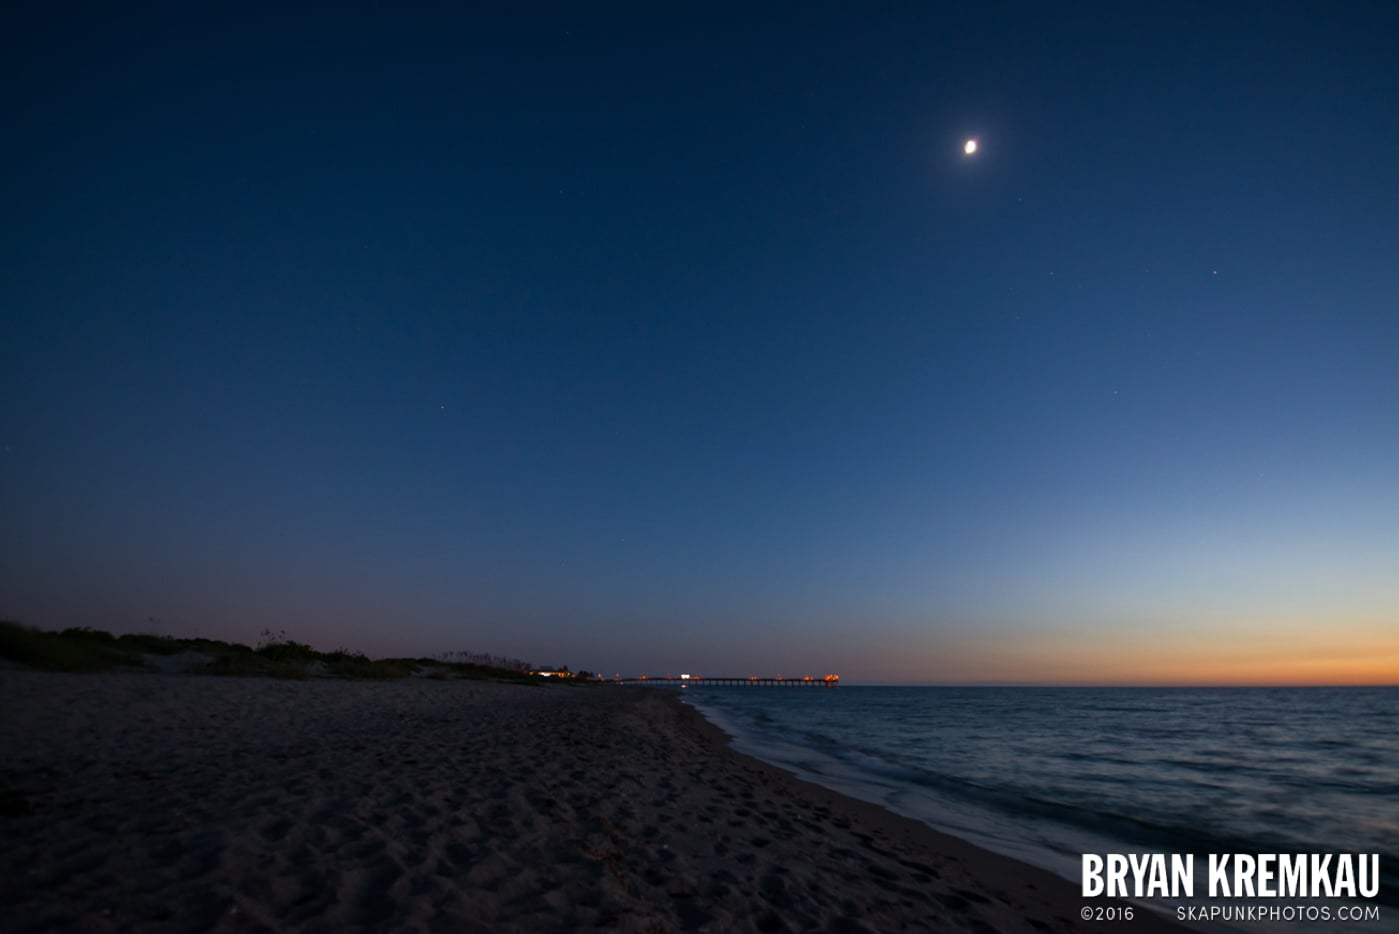 Sunsets, Astrophotography & Birds @ Venice, Florida - 10.25.14 - 11.5.14 (105)